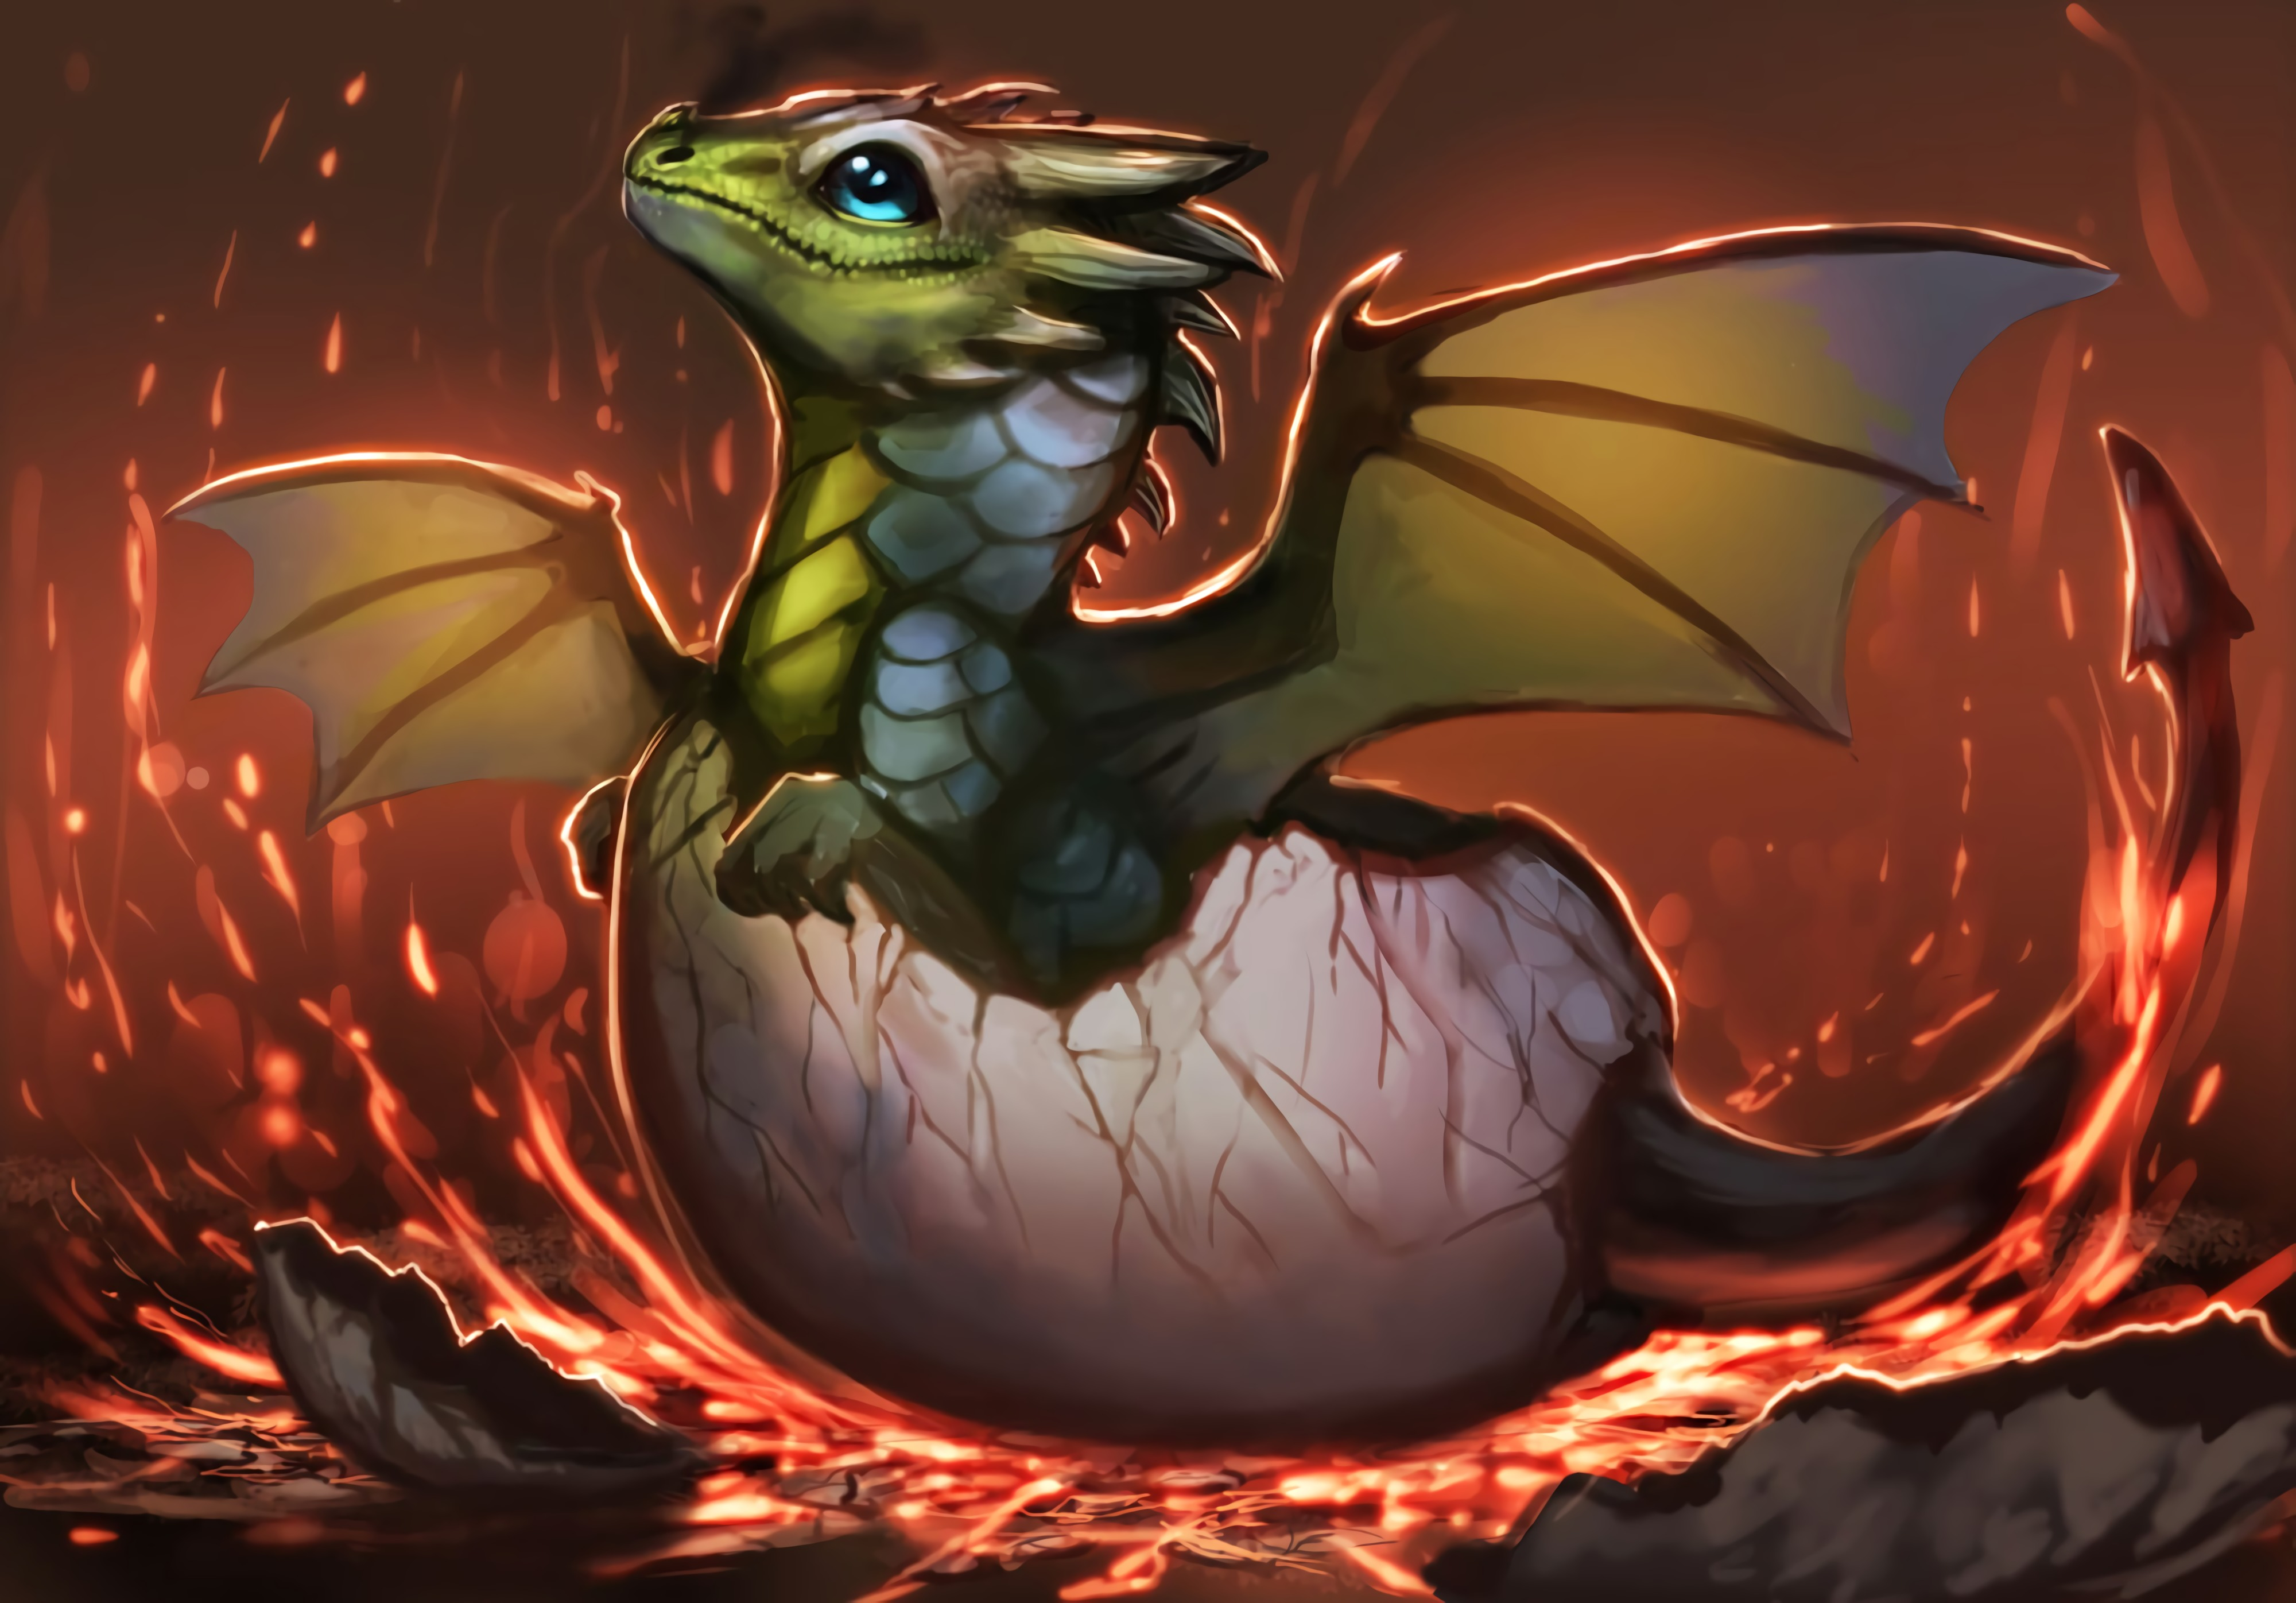 144224 download wallpaper Dragon, Egg, Shell, Art screensavers and pictures for free